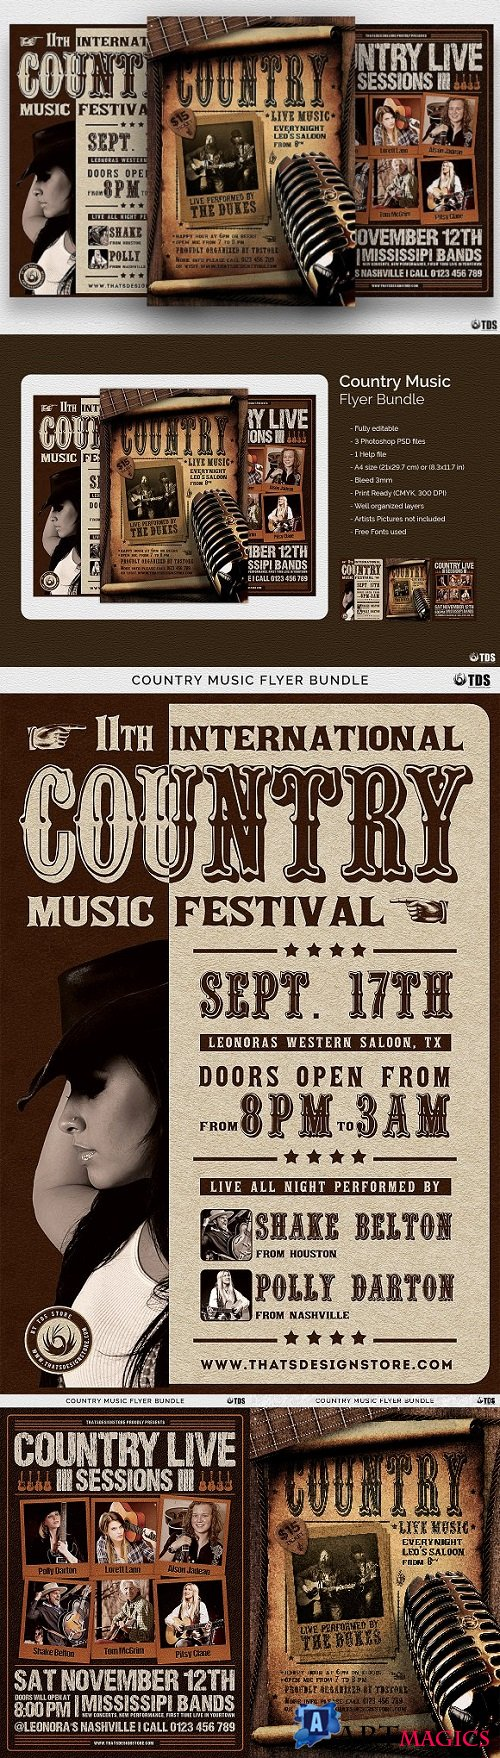 Country Music Flyer Bundle 2081052